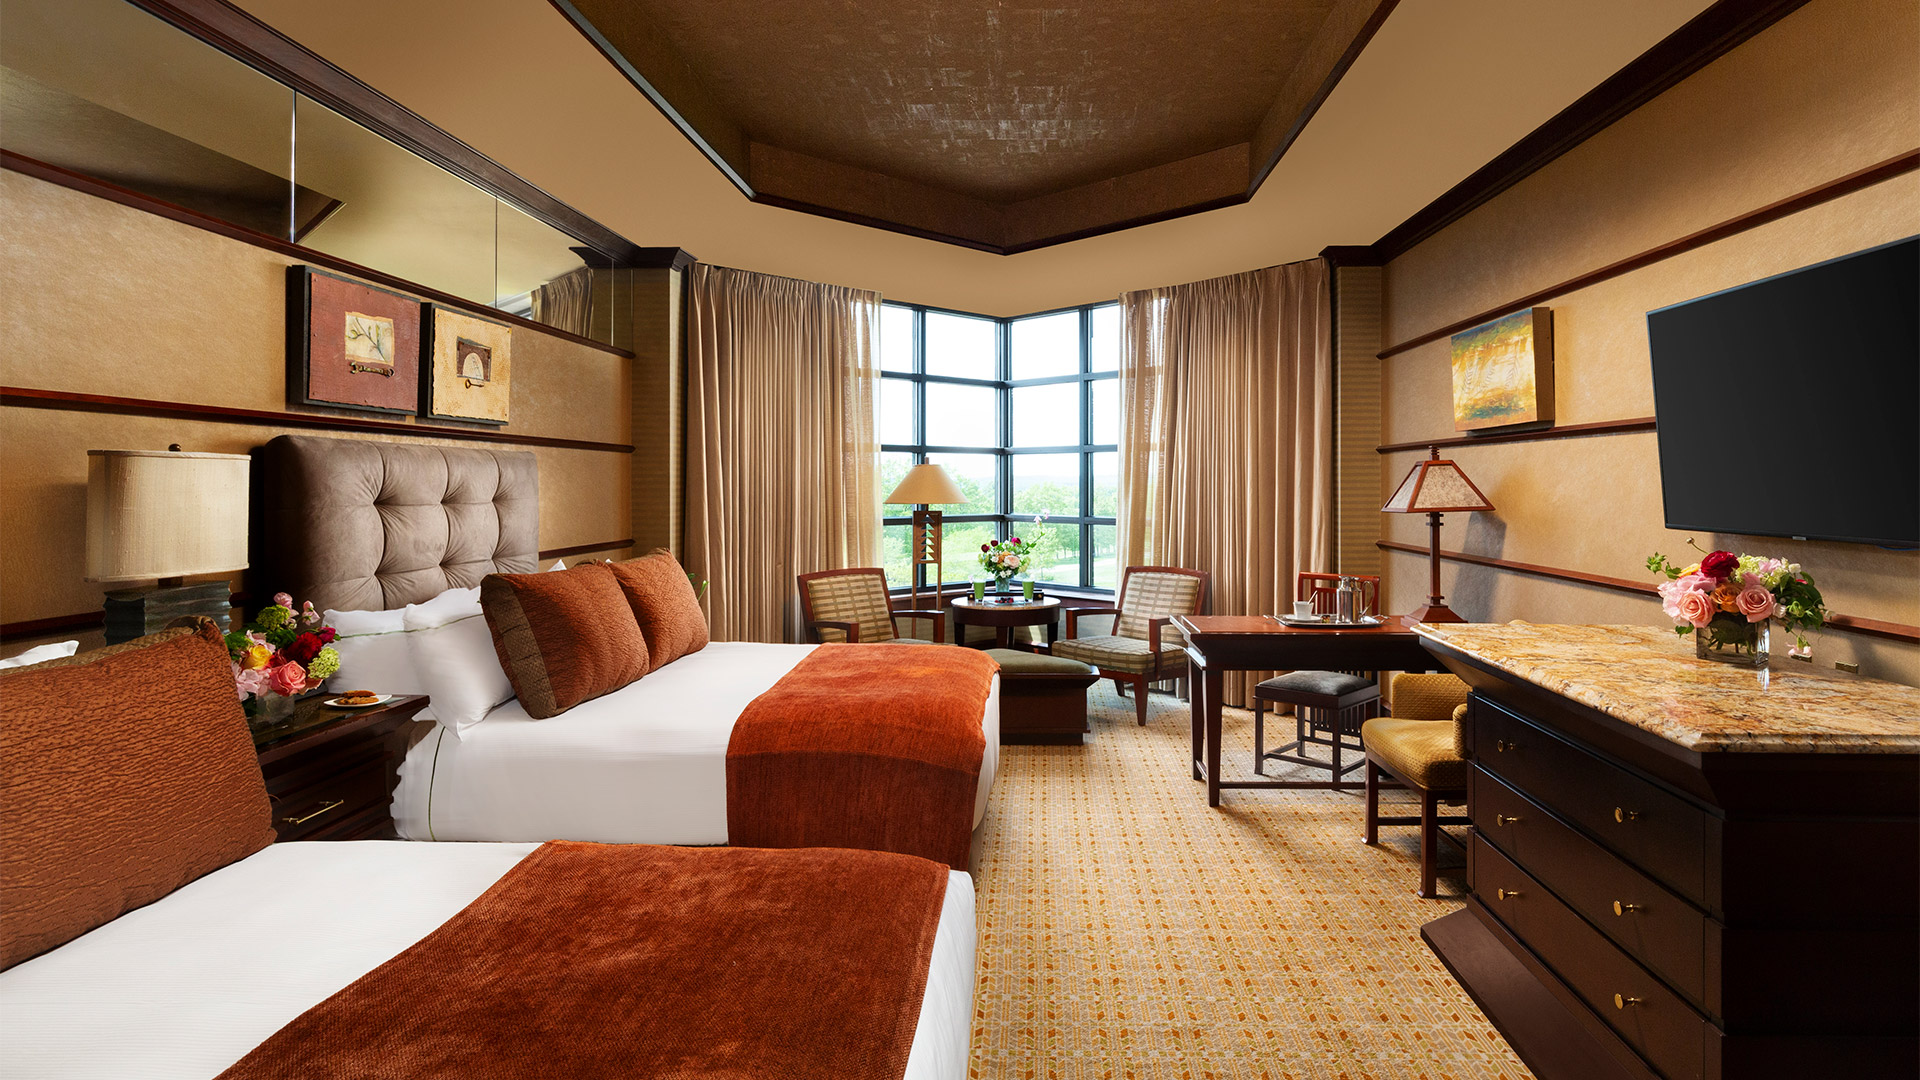 interior shot of Falling Rock's luxury double room. There are two queen size beds on the left side of the room. They have plush headboards and are decorated with white and burnt orange bedding. On the right side of the room is a dining area and a dresser with a flat screen TV mounted above it. There are windows overlooking the resort grounds with a sitting area.